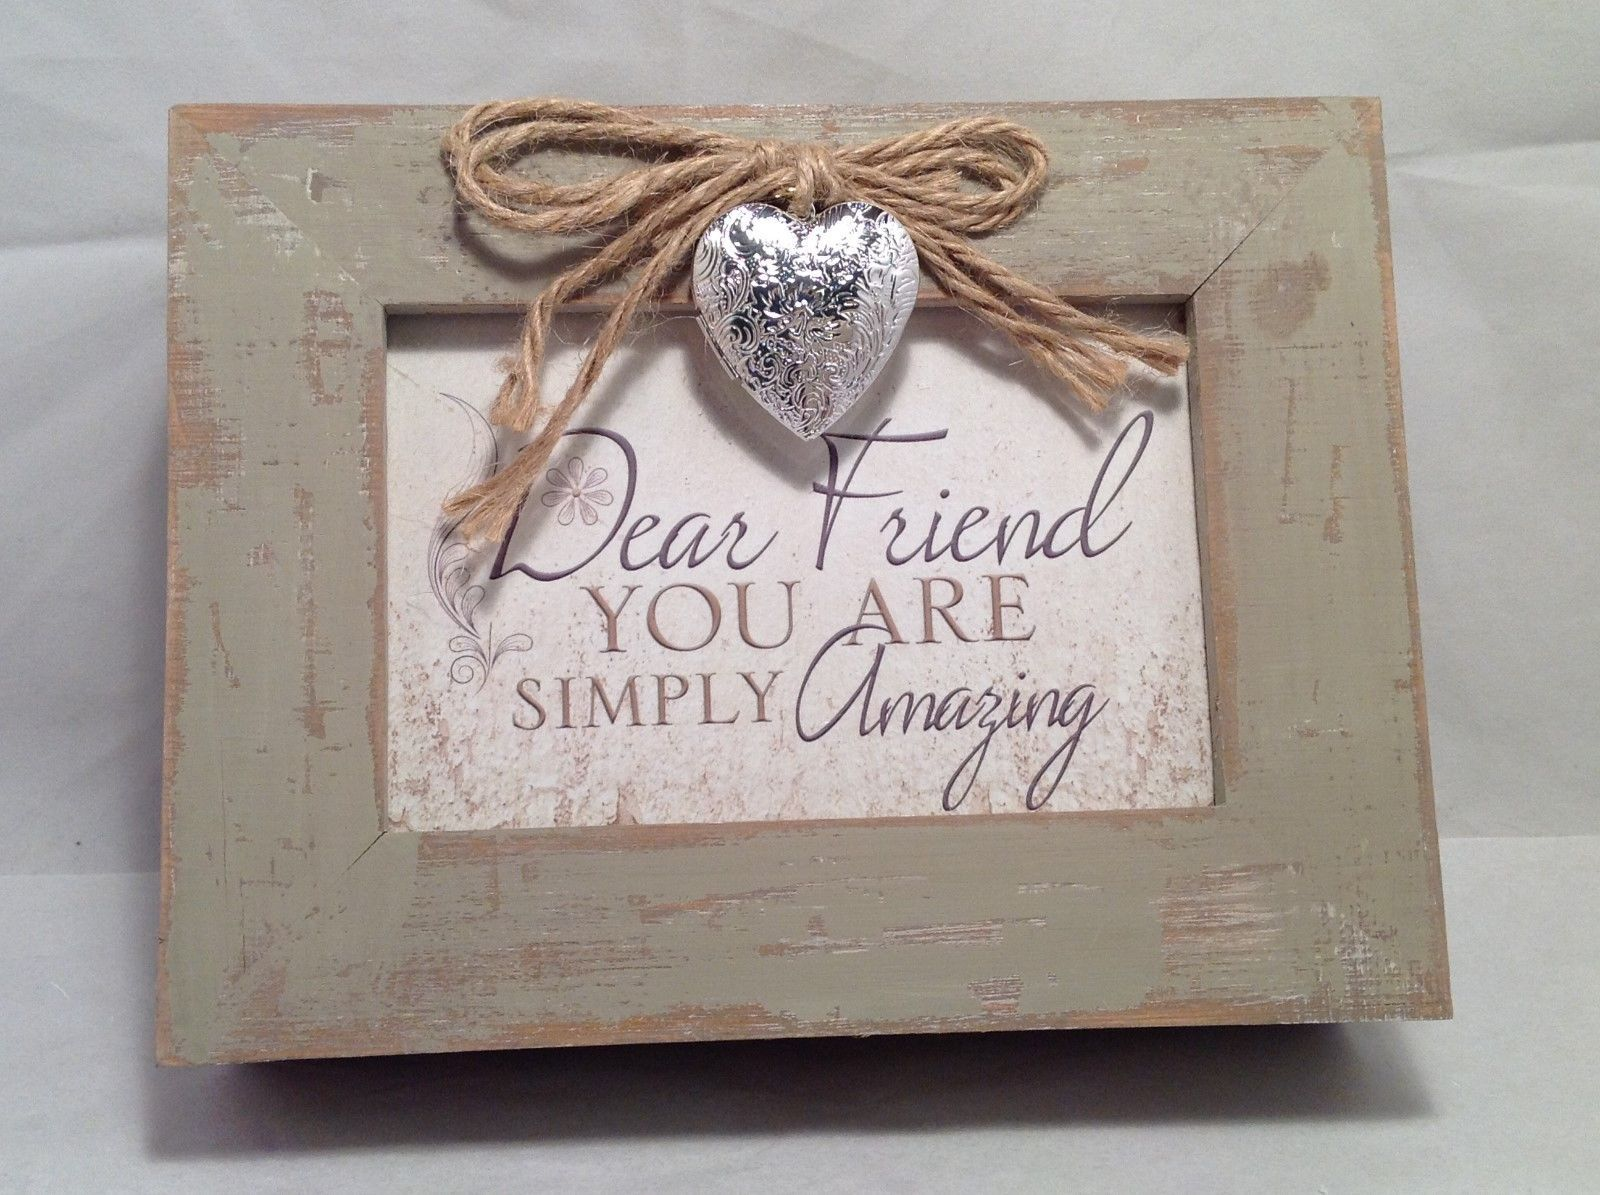 Adorable Rustic Looking Wind Up Musical Jewelry Box